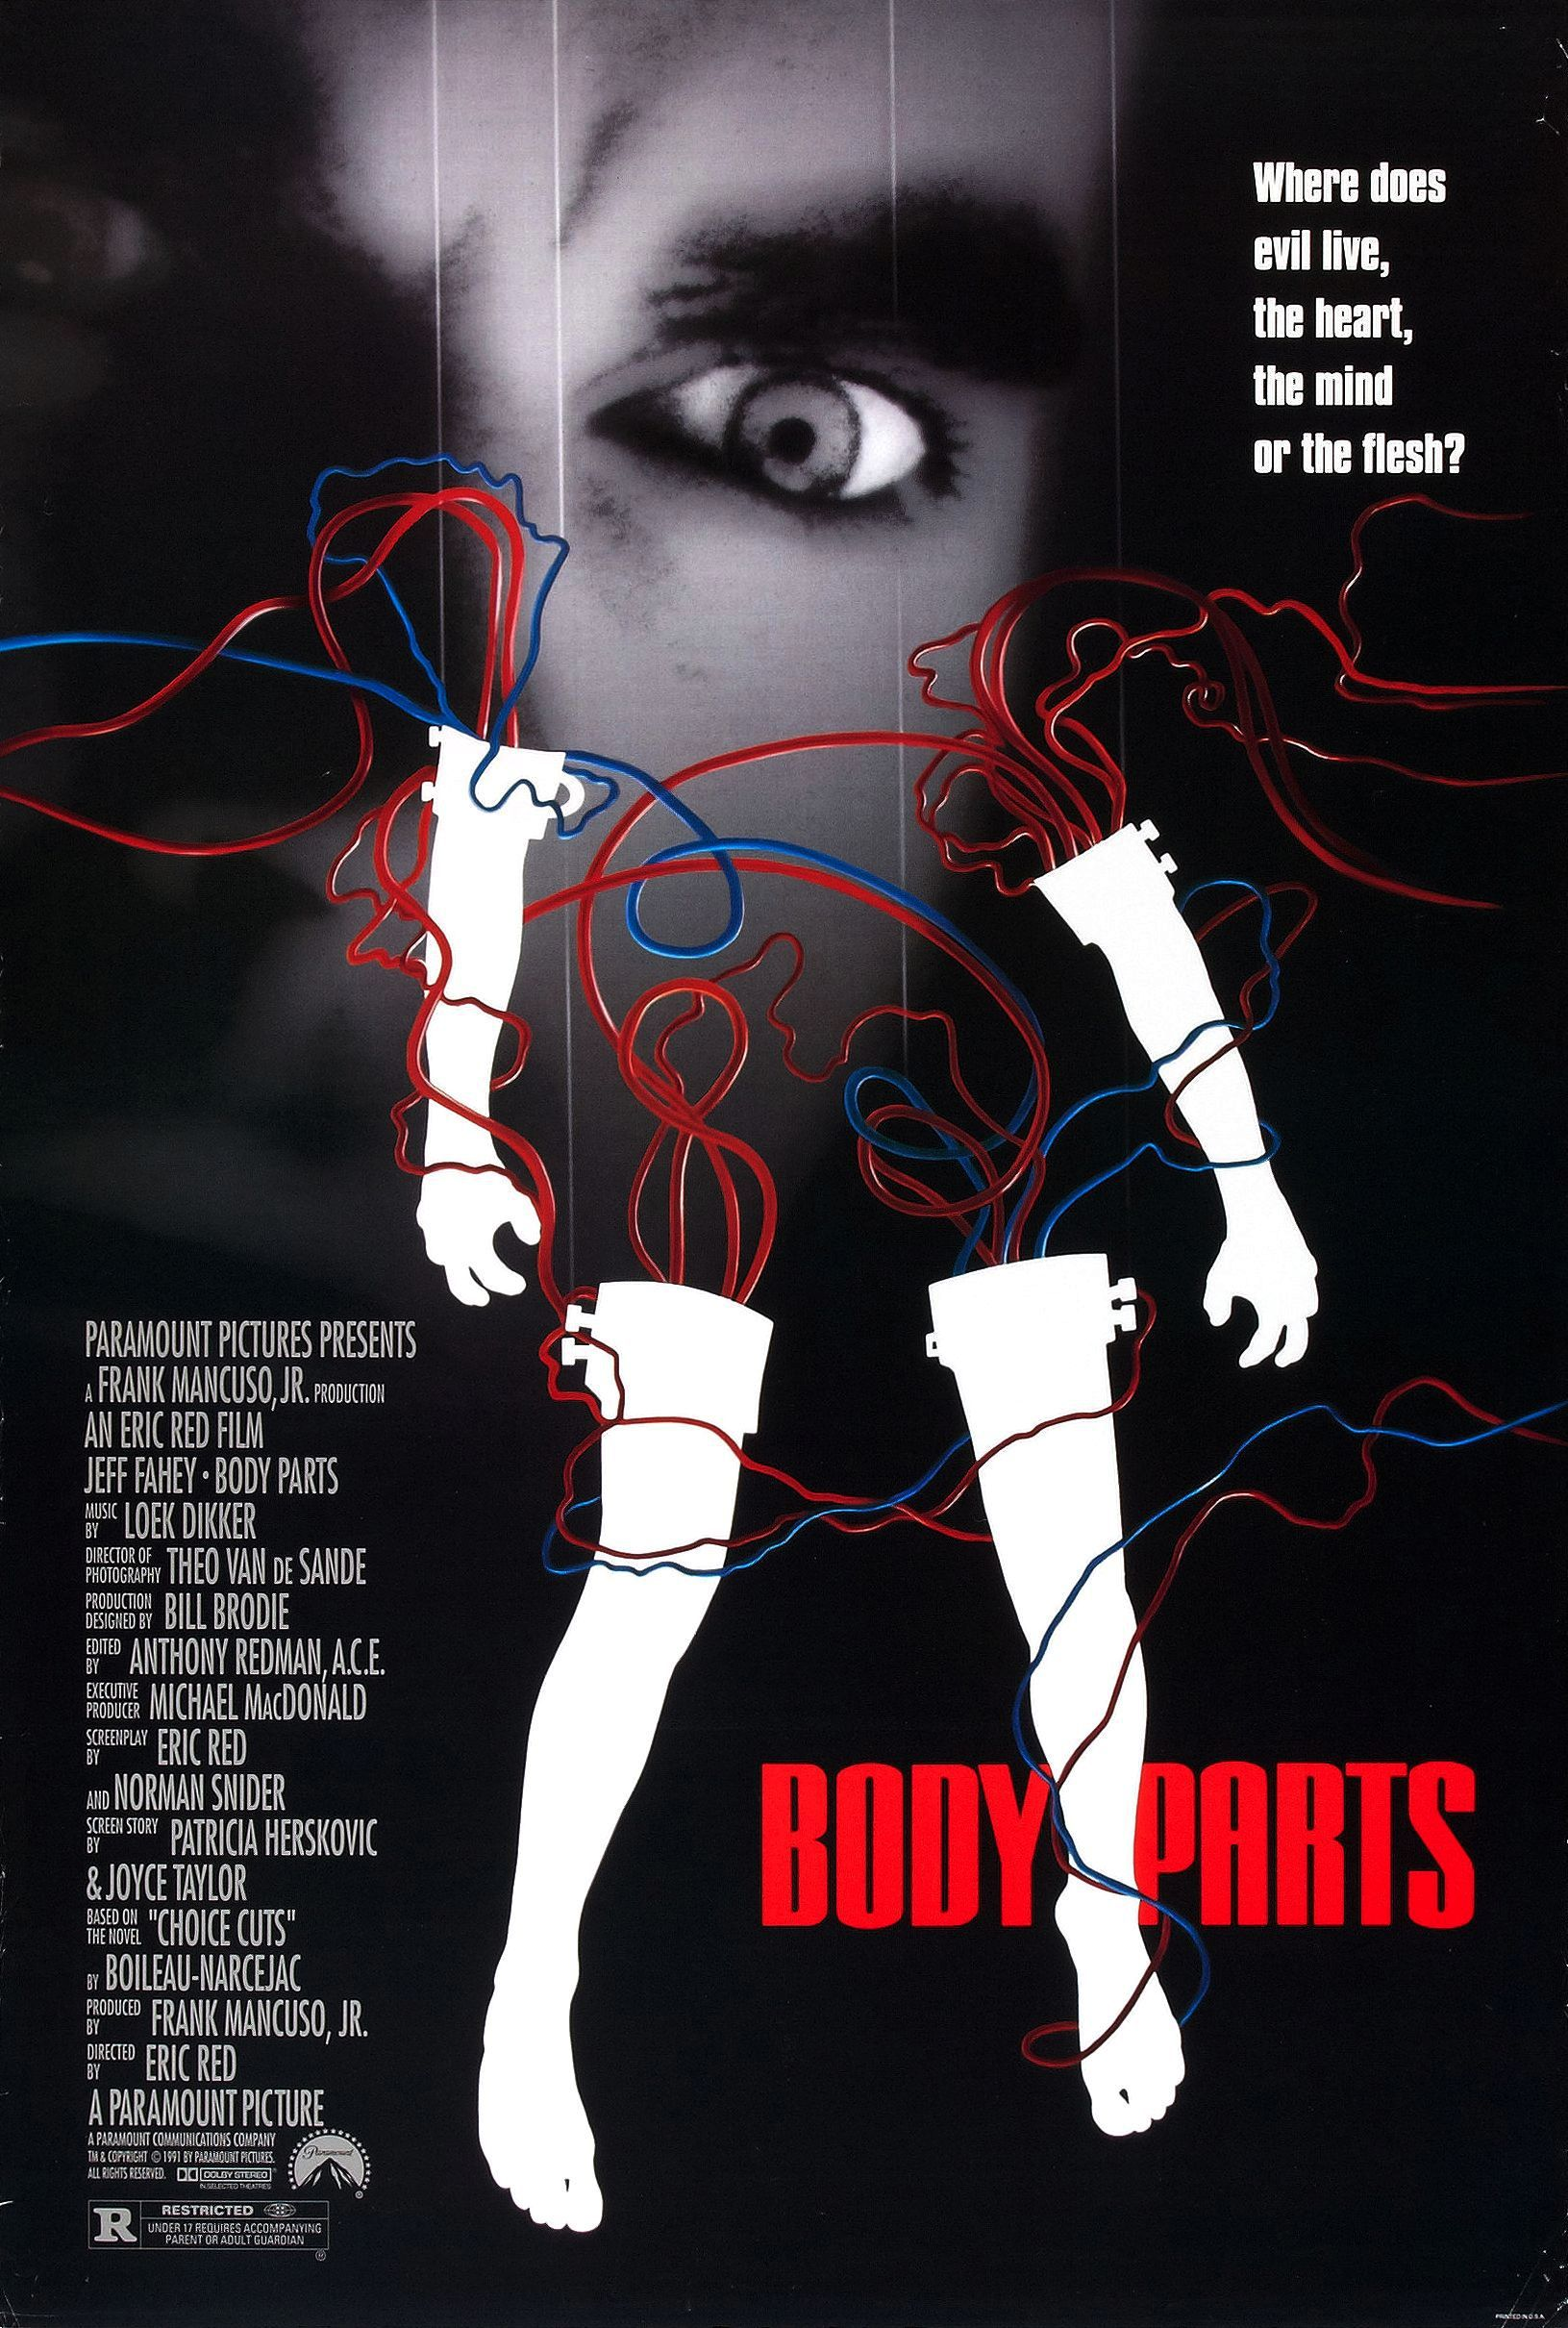 Body parts (1991) d'Eric Red